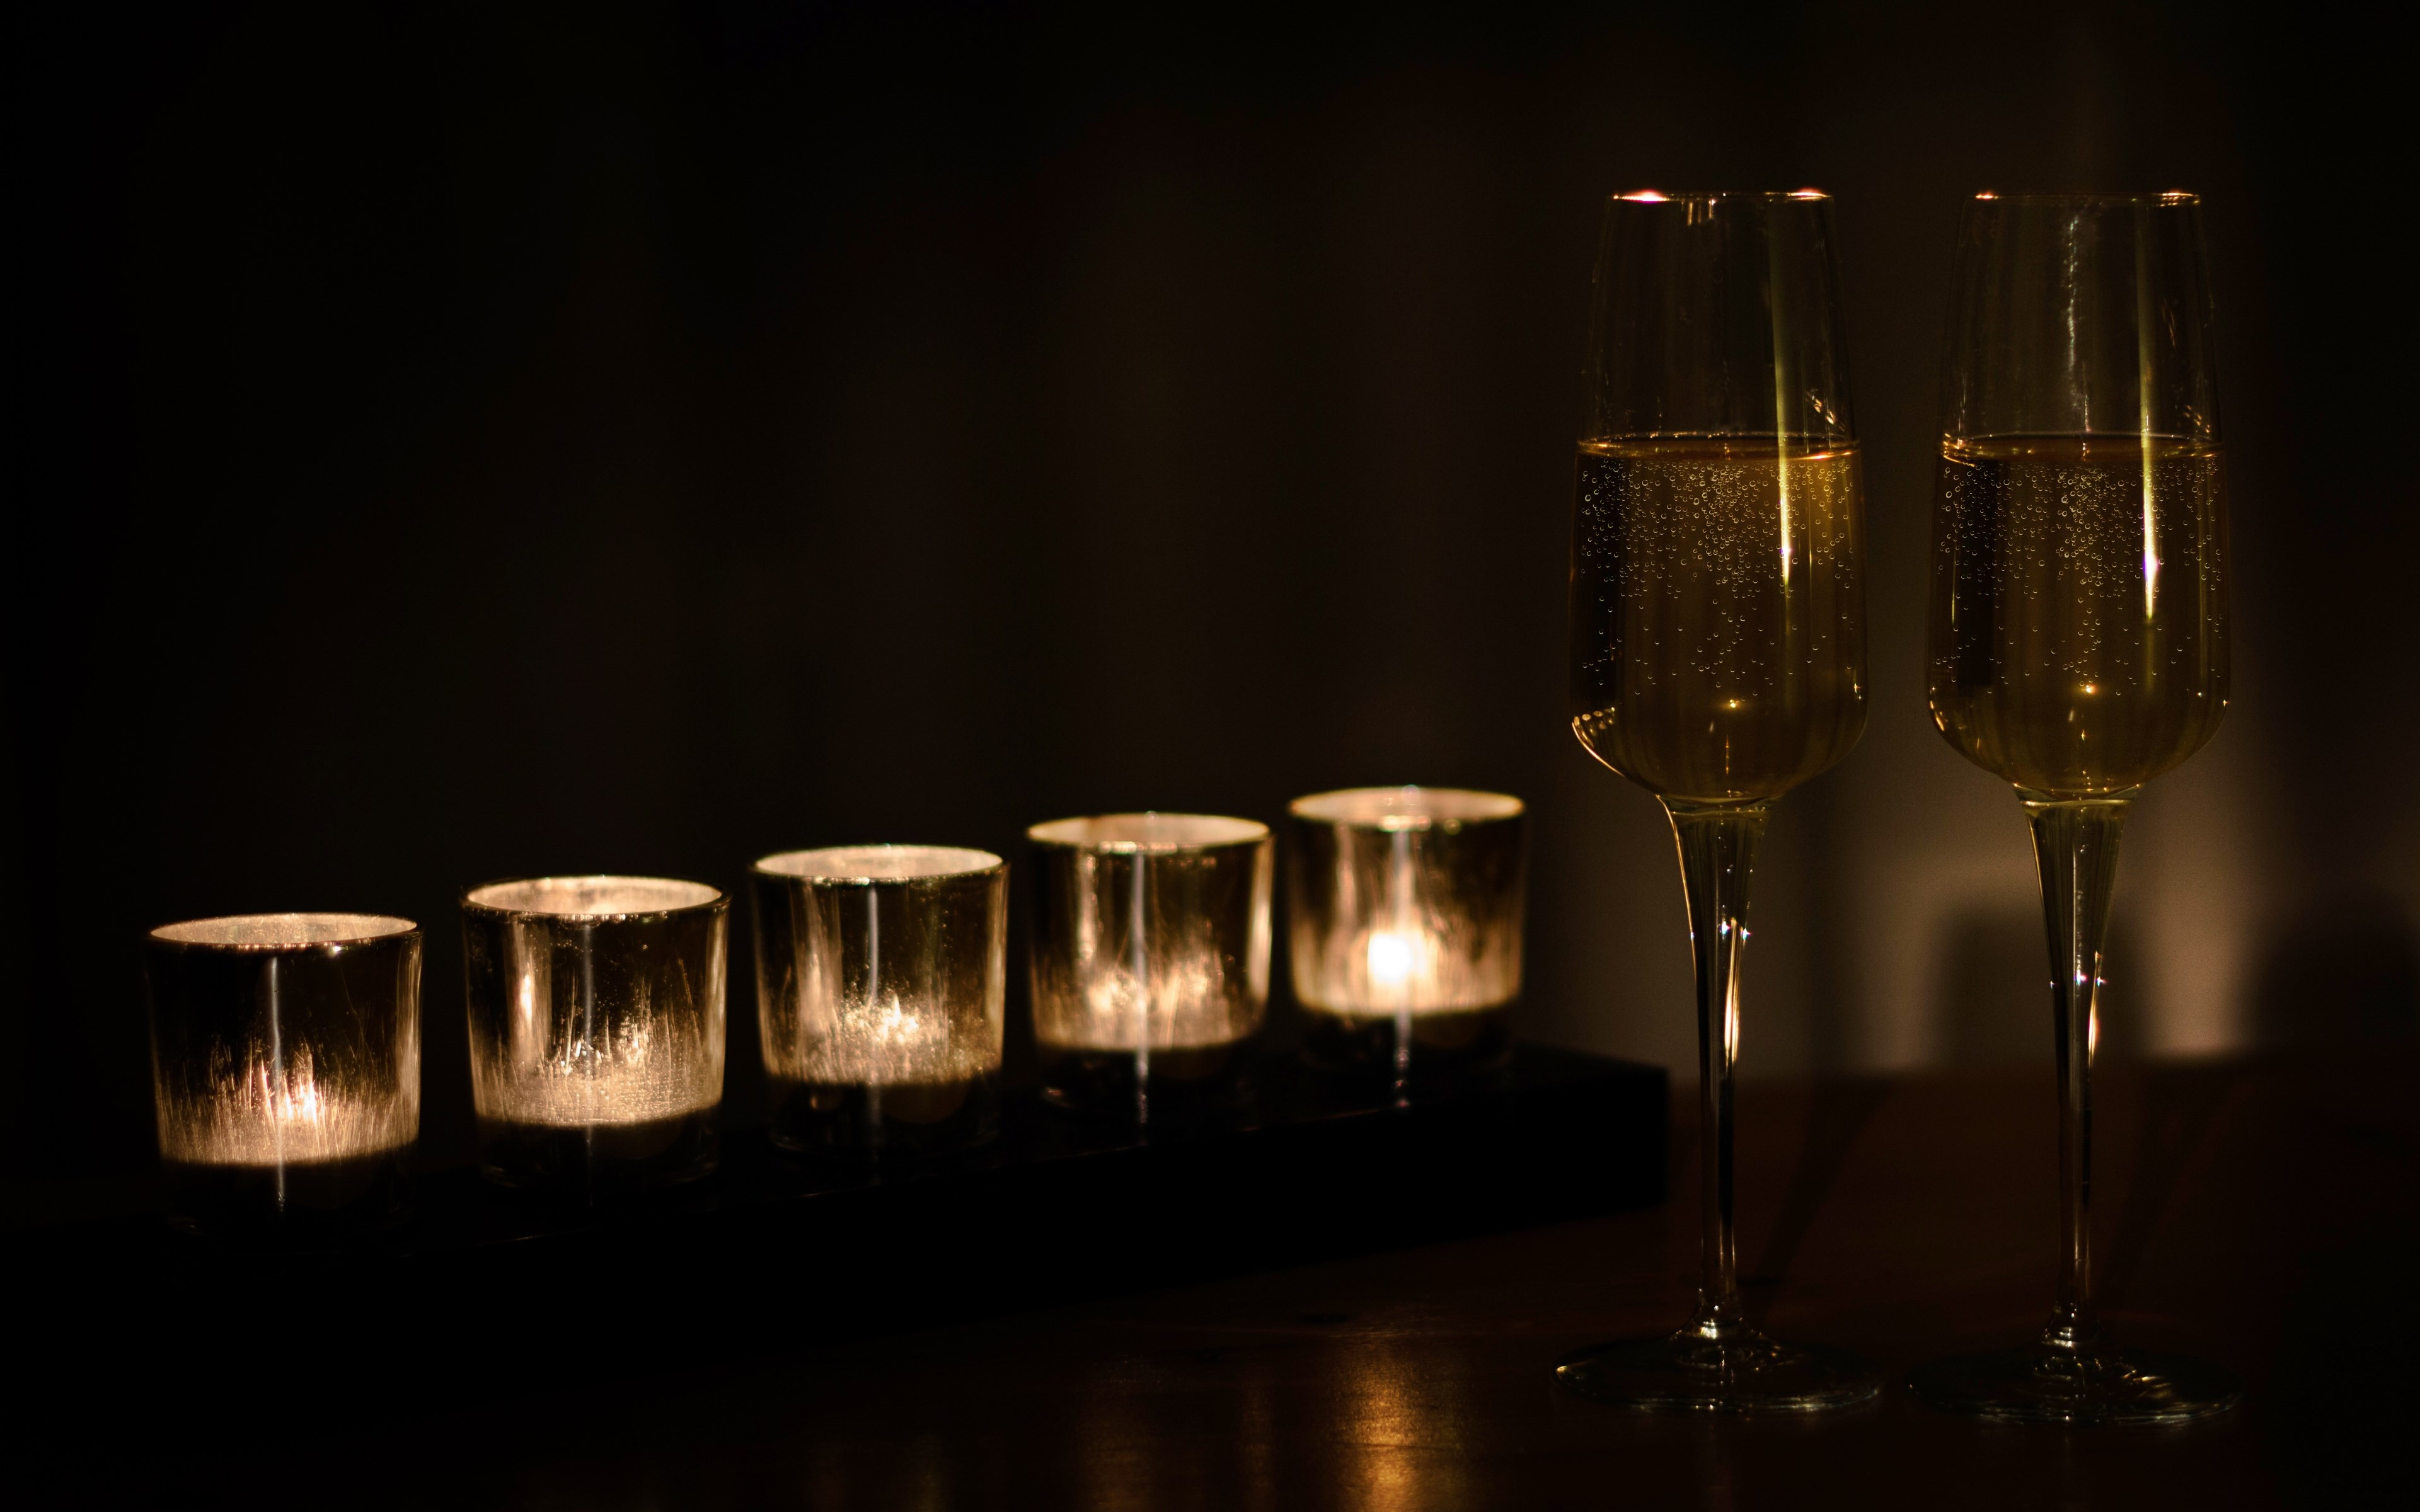 Champagne and candles | 3840x2400 wallpaper